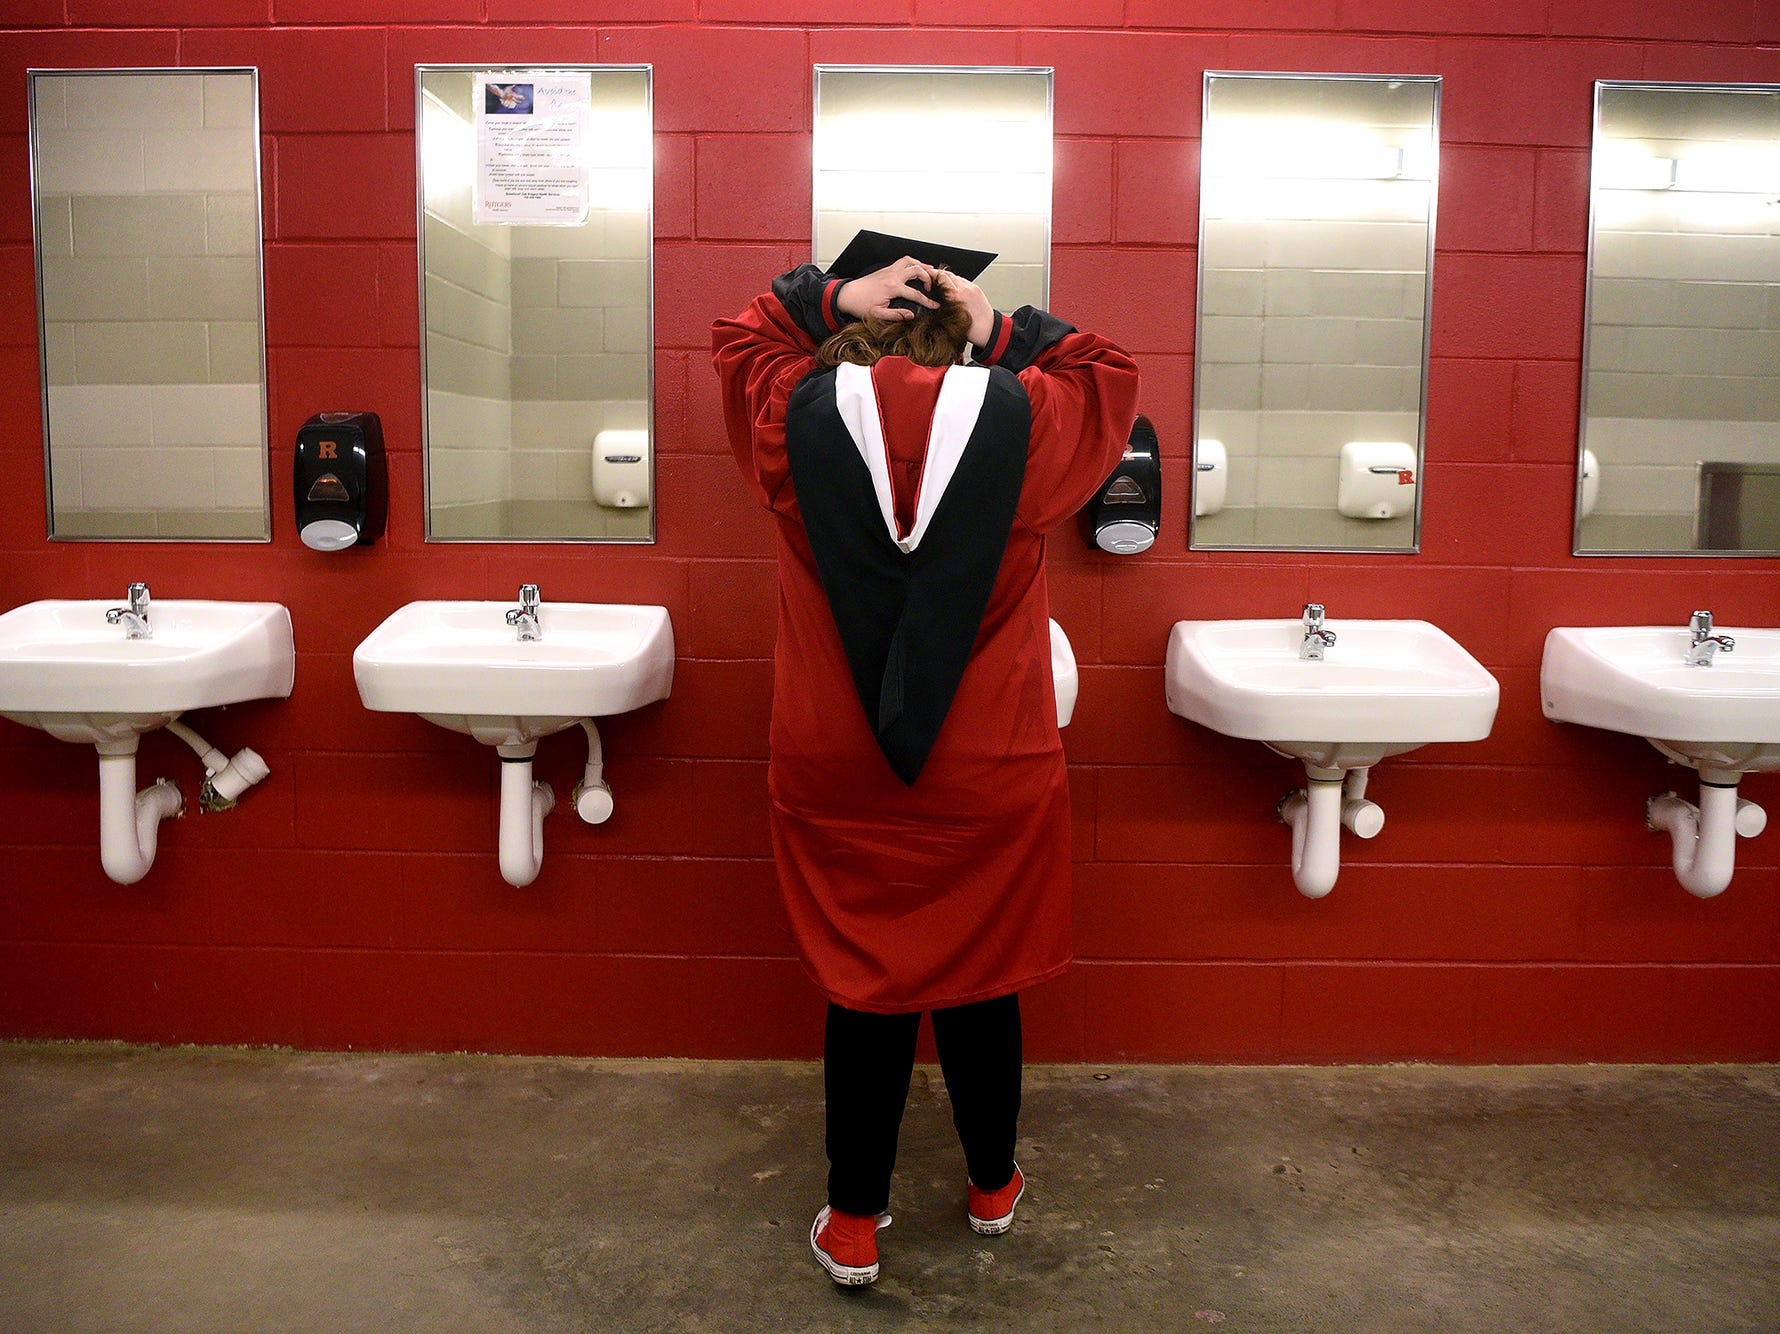 The 252nd commencement of Rutgers University was held at High Point Solutions Stadium in Piscataway on Sunday, May 13, 2018. Abigail Harriman of New Brunswick, adjusts her cap, prior to graduation.